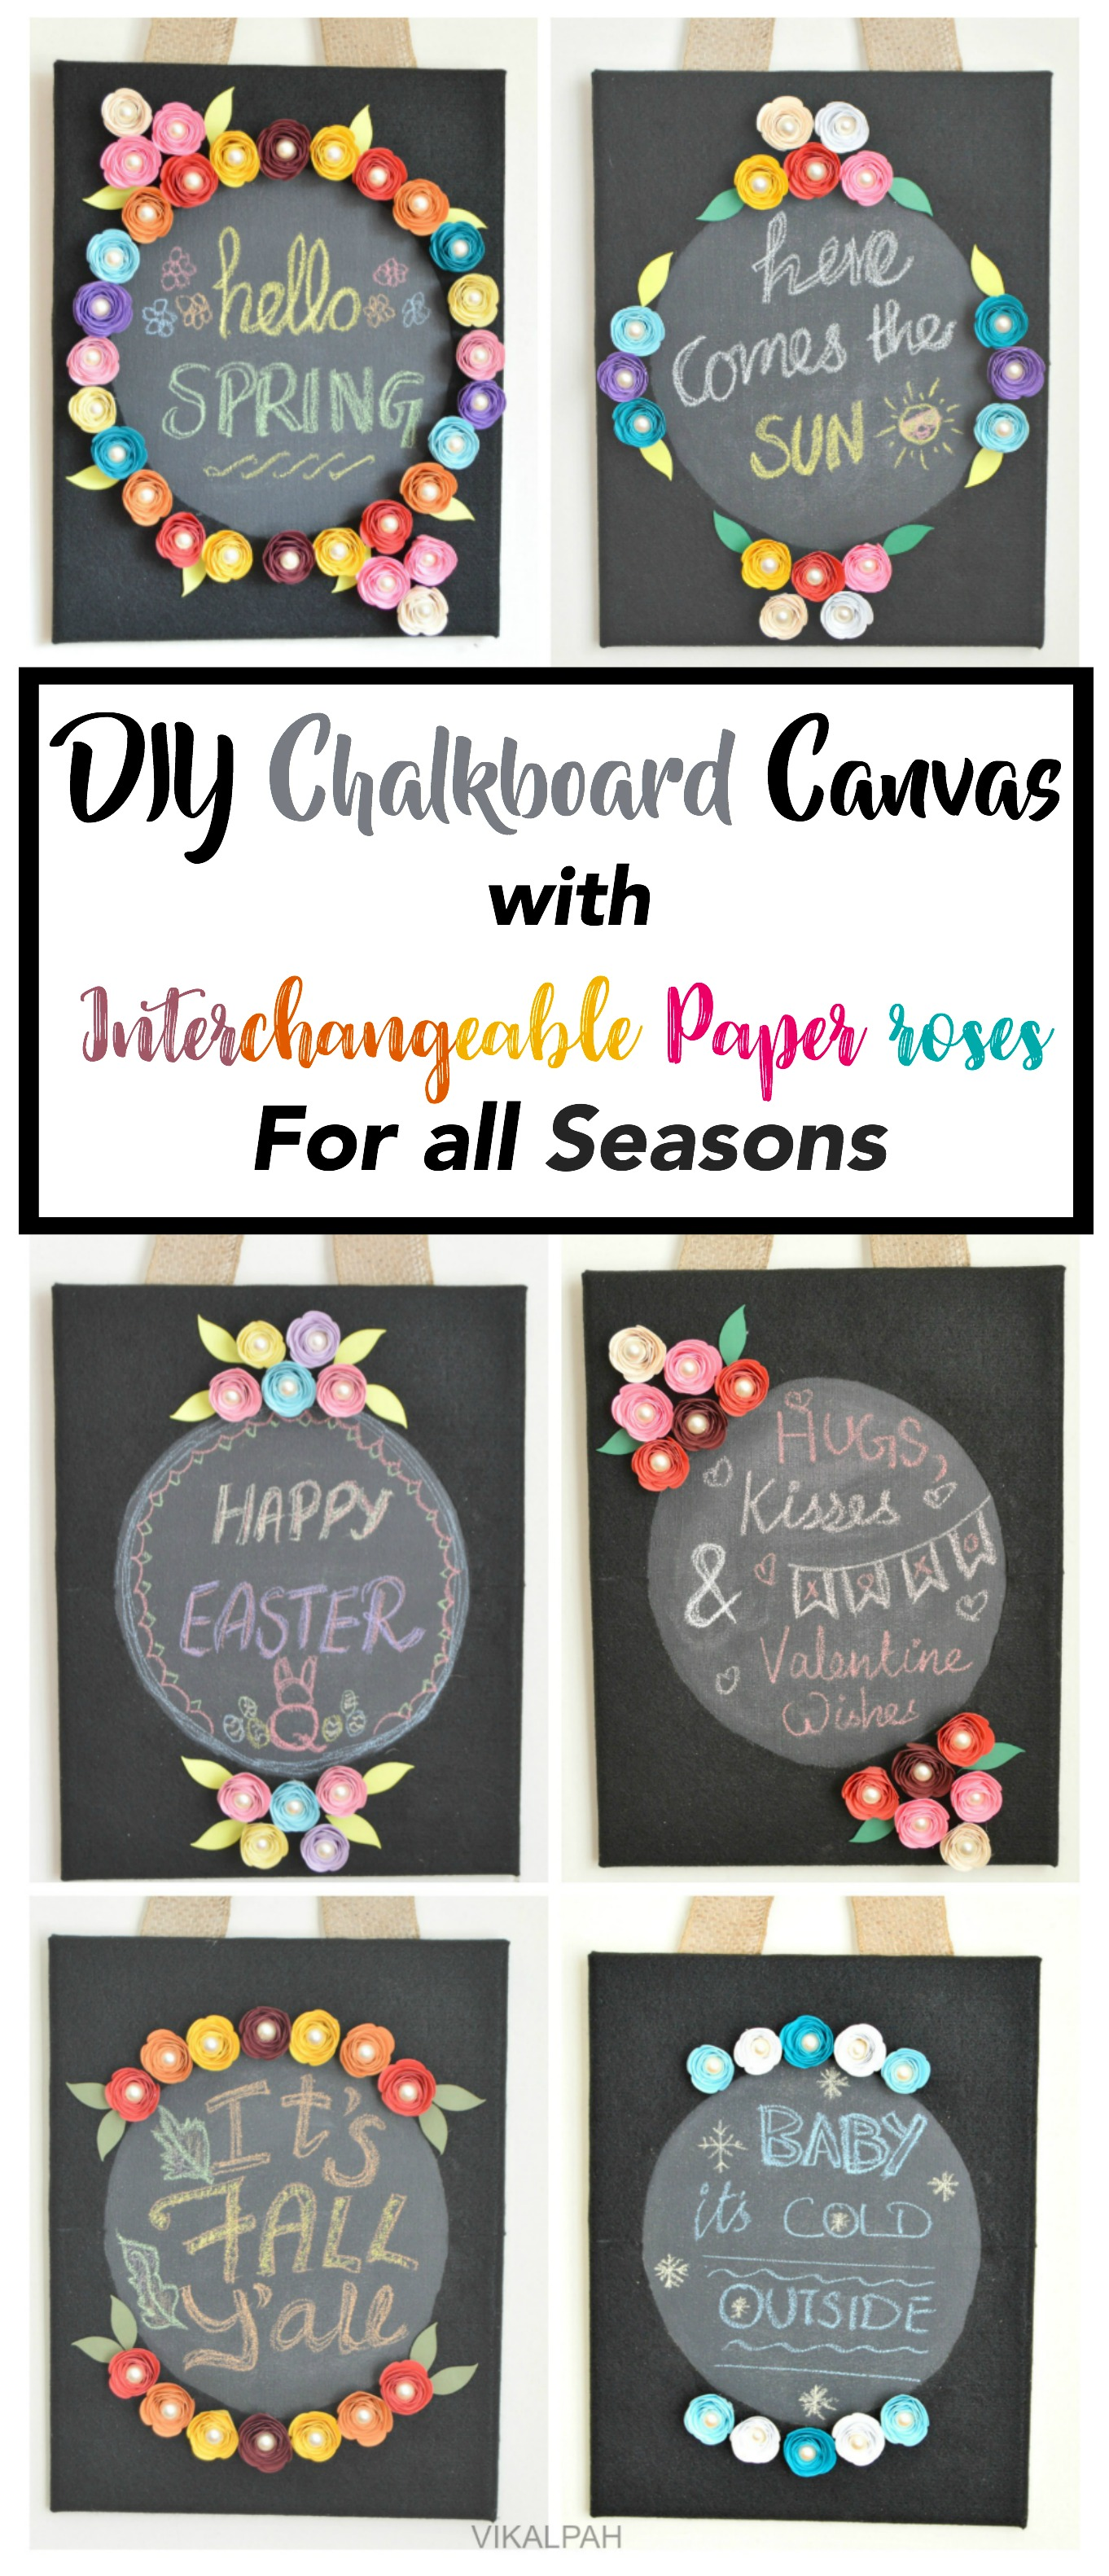 Picture of DIY Chalkboard Canvas With Interchangeable Paper Roses for All Seasons